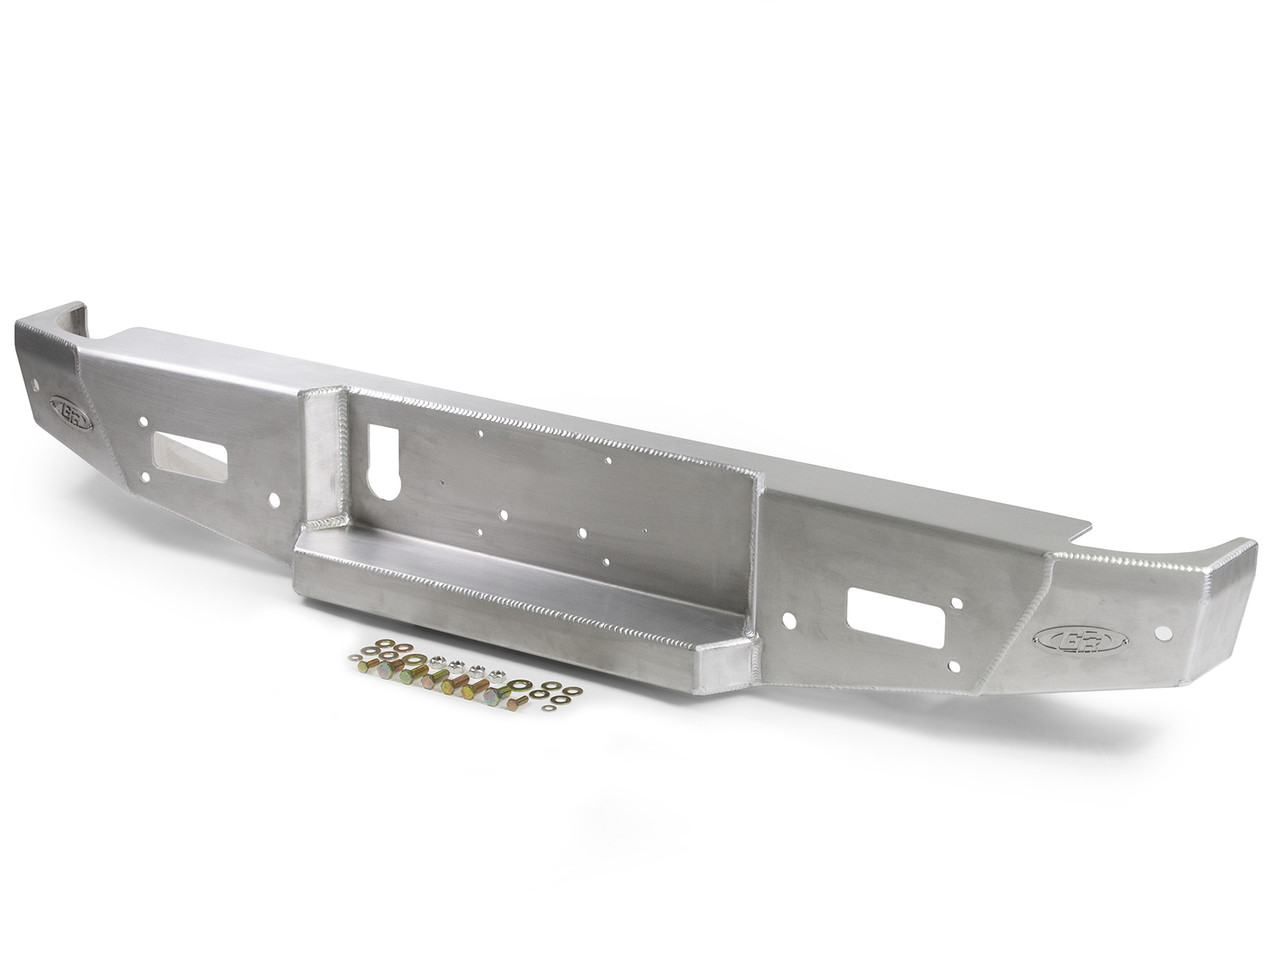 Jeep Gladiator (JT) Aluminum Rear Bumper (With Supplied Hardware)